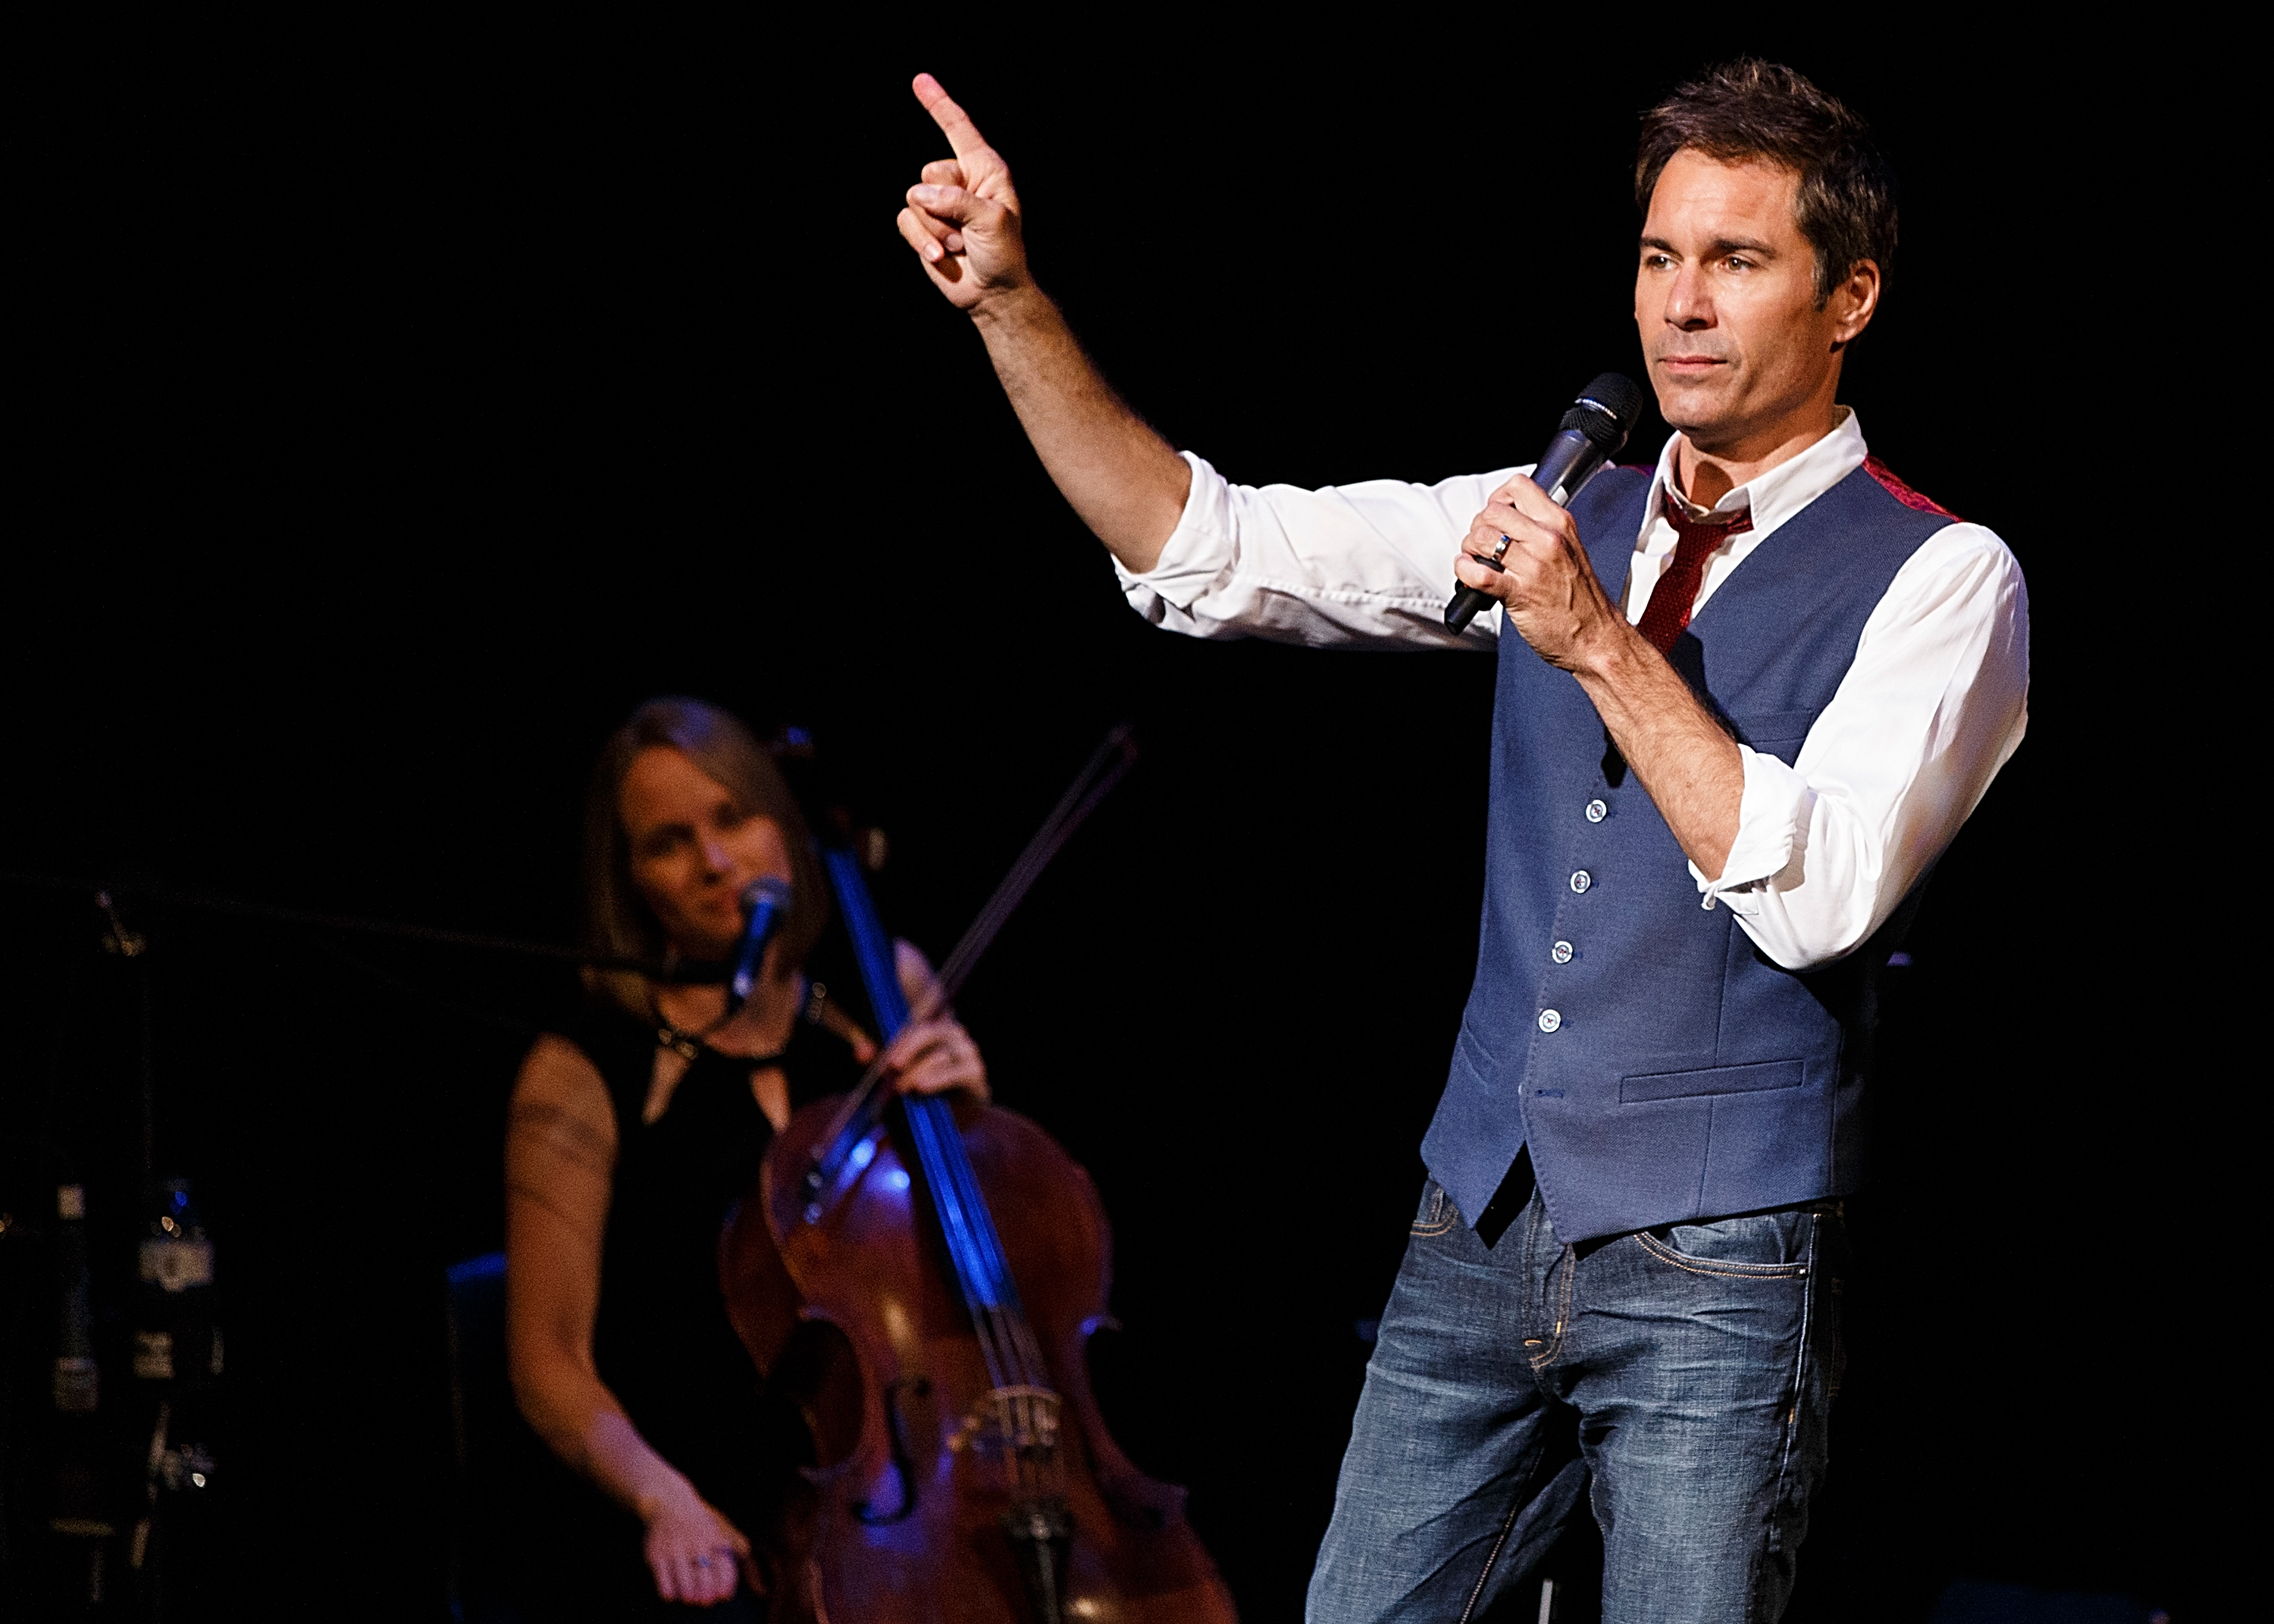 Actor Eric McCormack performs onstage during 'An Evening With Eric McCormack In Support Of Prostate Cancer Canada' at Stanley Industrial Alliance Stage on August 5, 2016 in Vancouver, Canada.